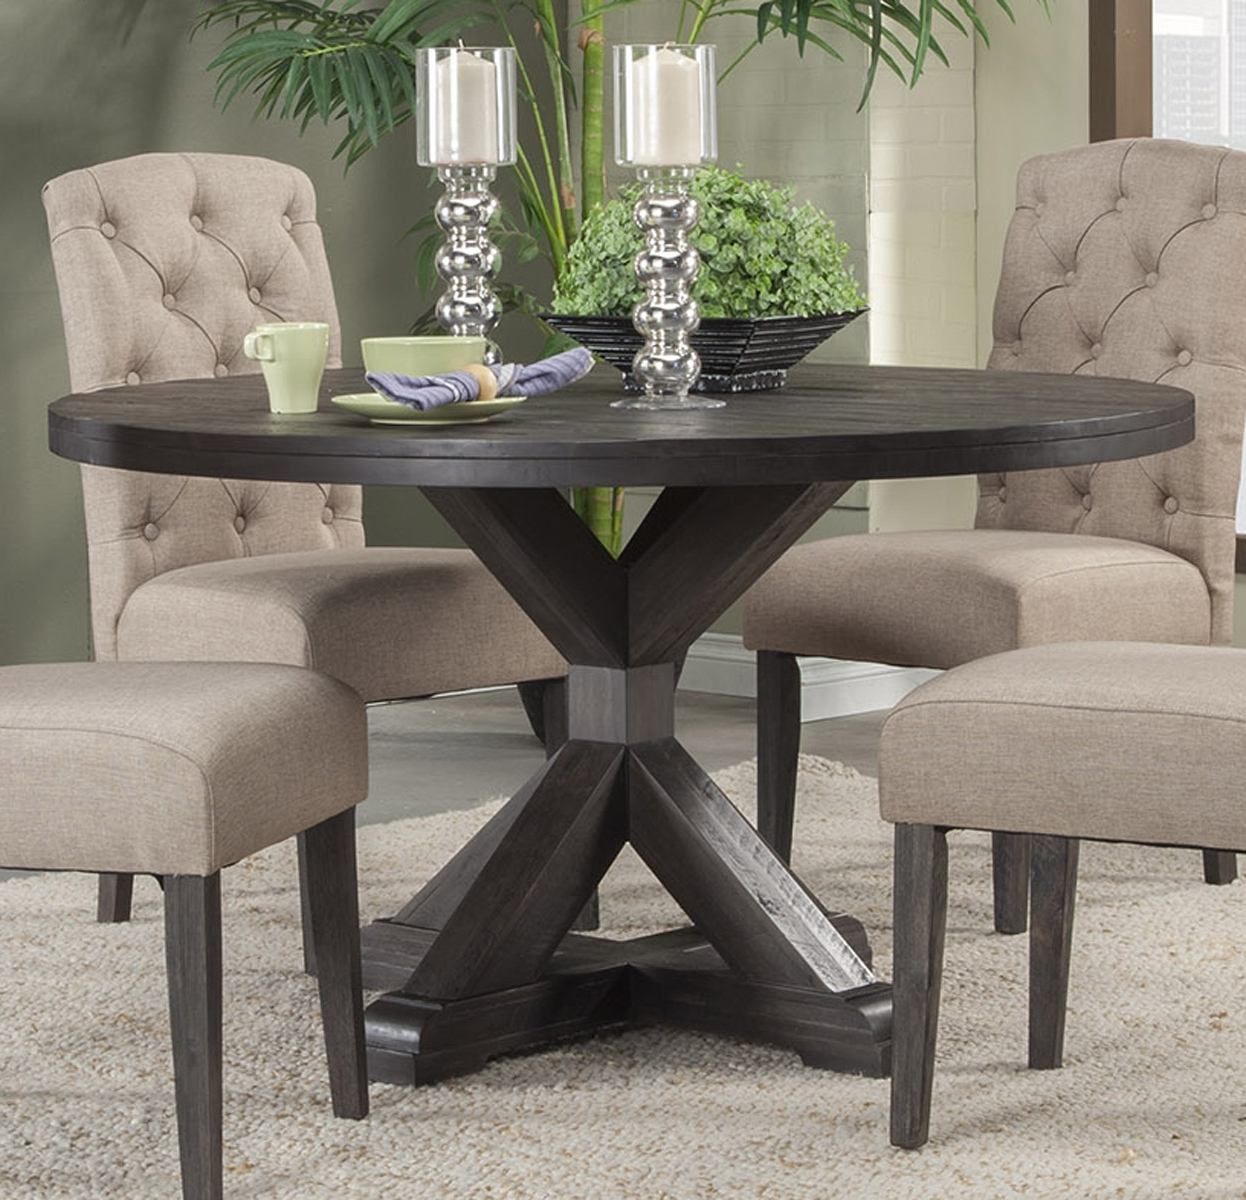 Preferred Alpine Furniture Newberry Round Dining Table In Salvaged Grey 1468 With Dining Tables Grey Chairs (Gallery 8 of 25)